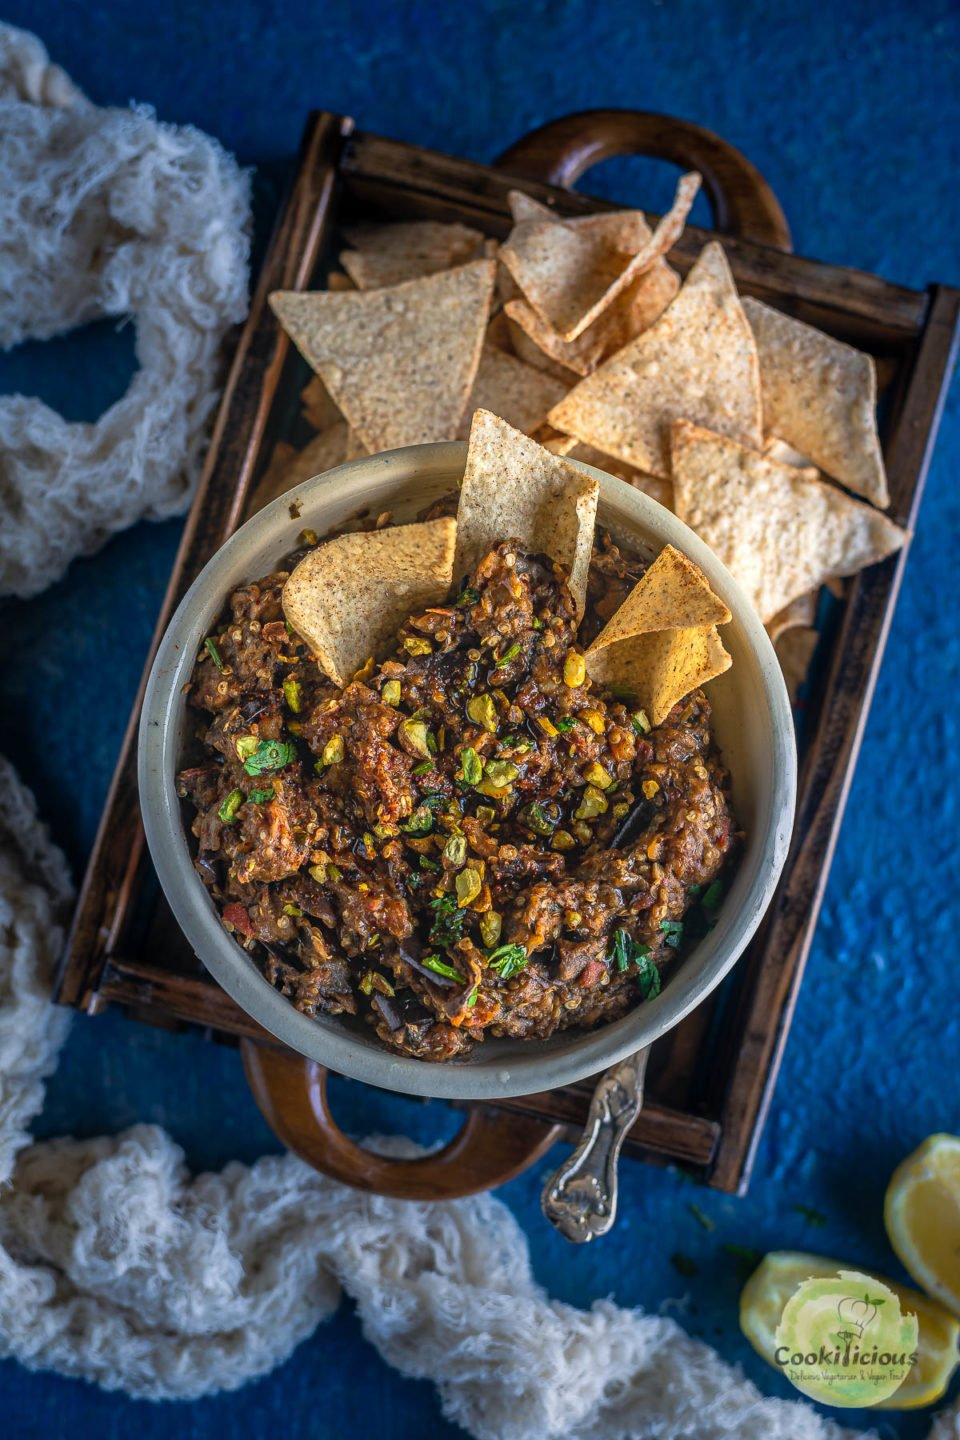 Moroccan Eggplant Zaalouk served with tortilla chips